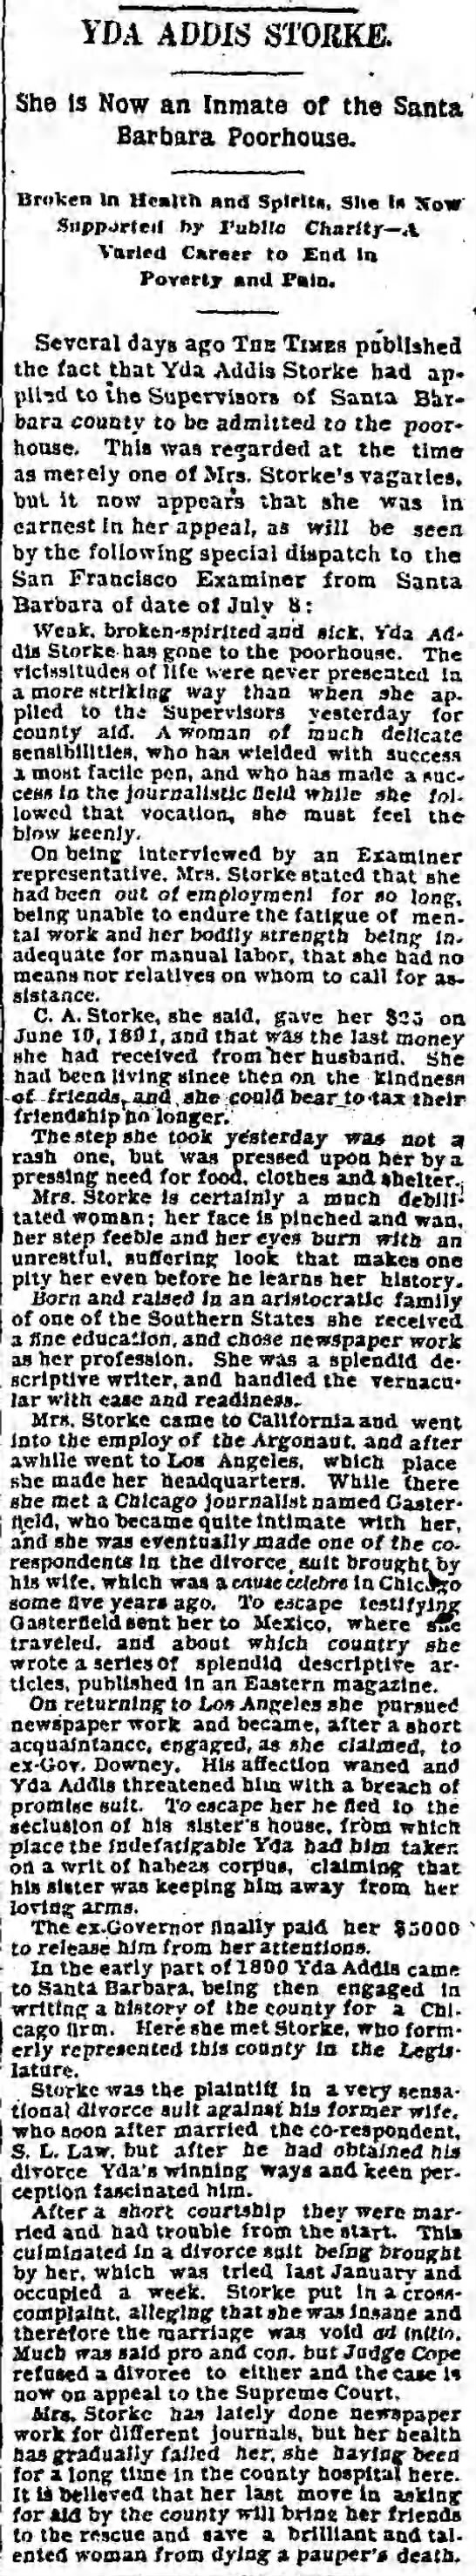 Now an Inmate of the Santa Barbara Poorhouse - IDA ADDIS ST0JIKJS. She is Now an Inmate of the...